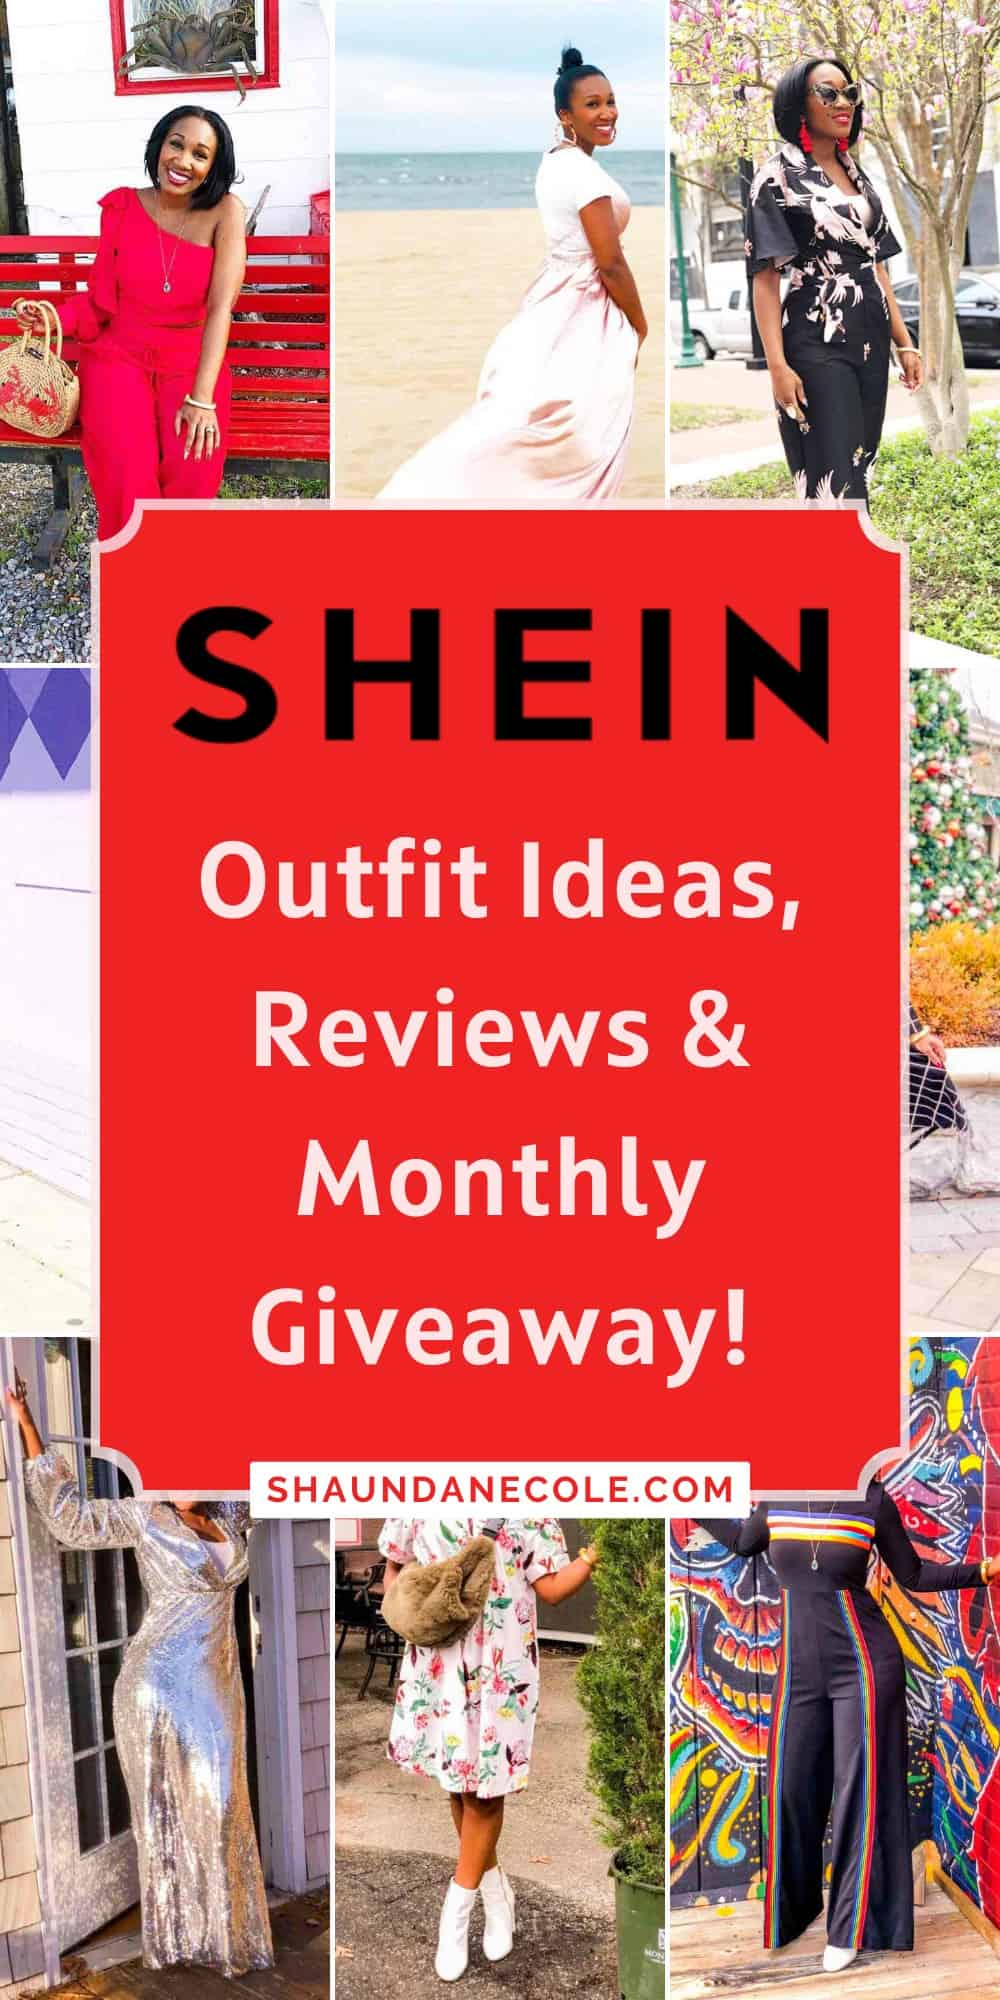 SHEIN Reviews, Outfit Ideas & Monthly Giveaway!